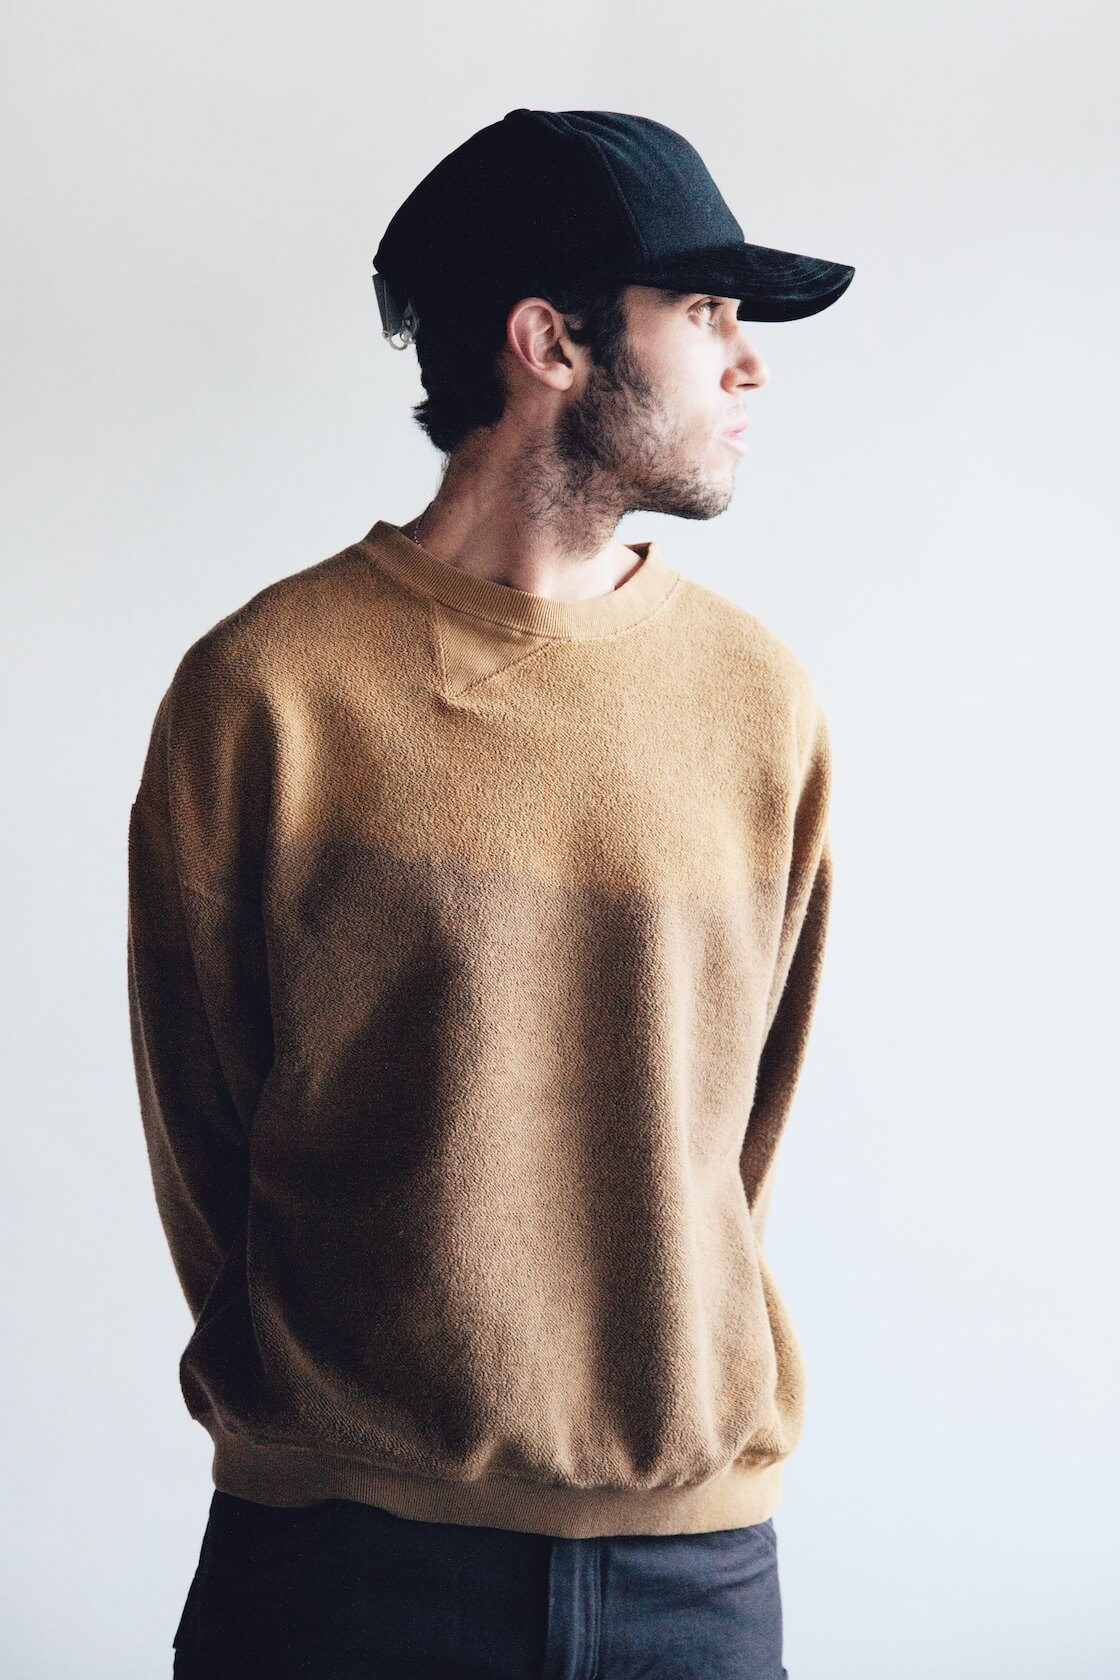 noma t.d. breach twist sweatshirt, hender scheme wool cap, orslow canoe club painter pants on body